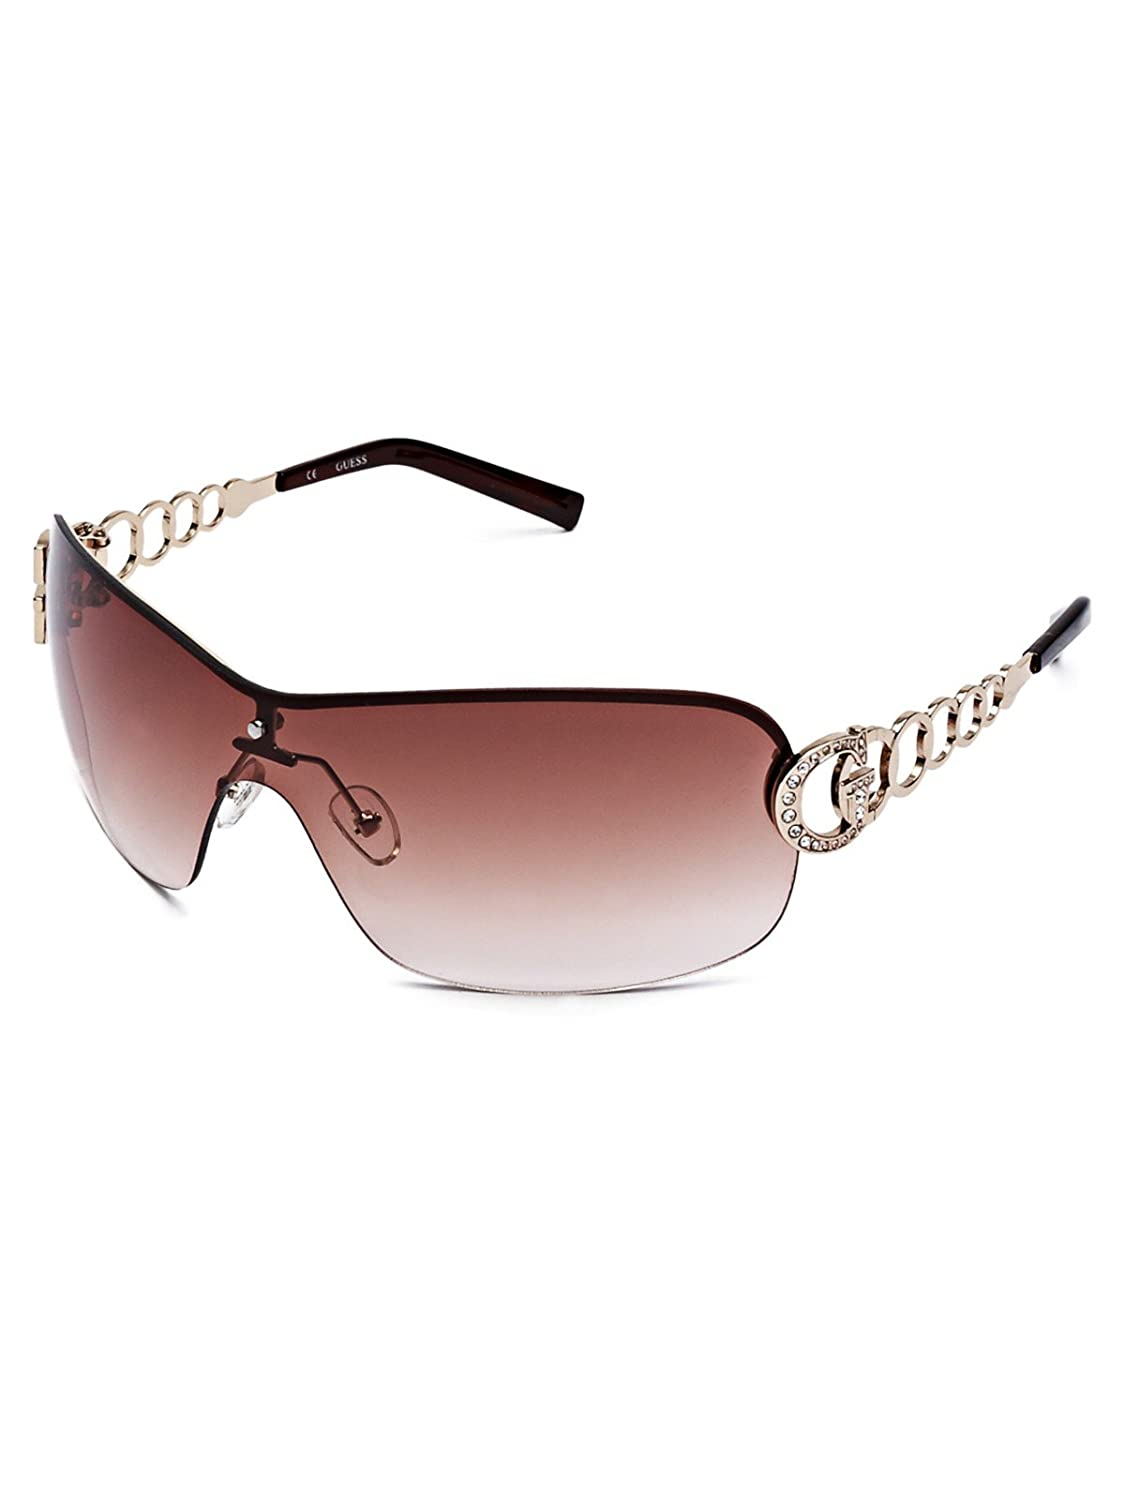 GUESS Women's Rimless Shield Sunglasses